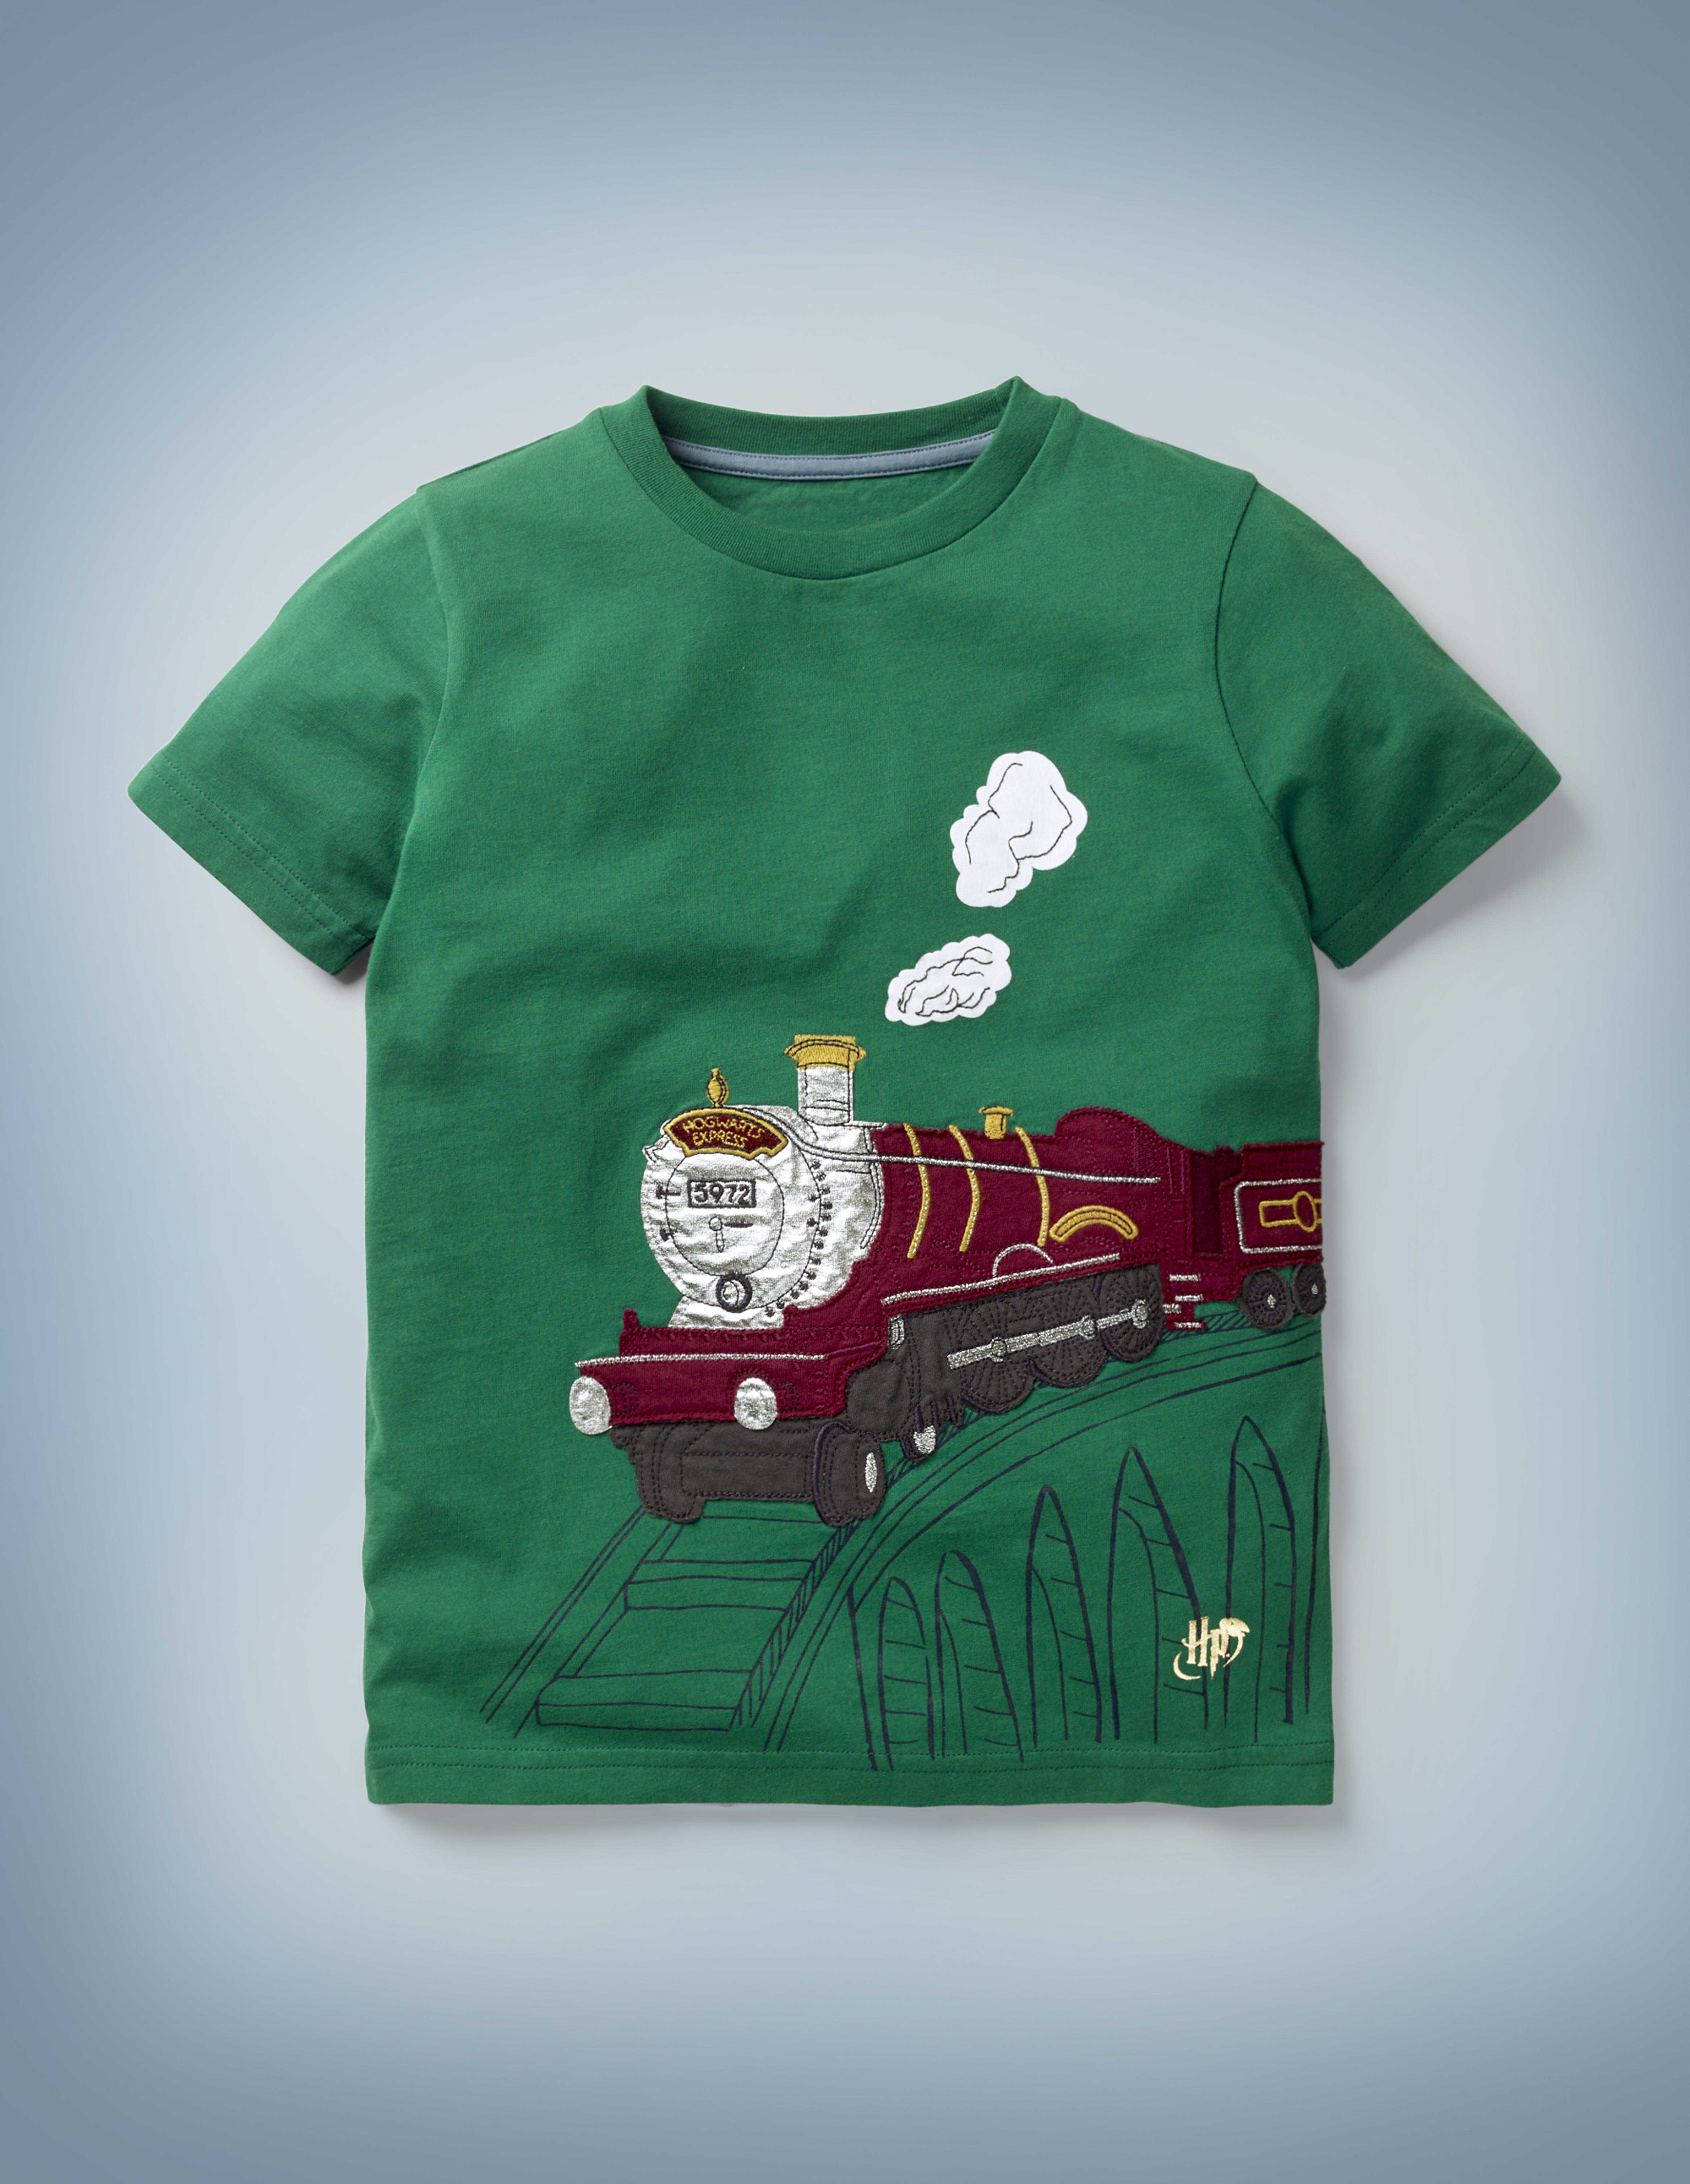 The Mini Boden Magical Transport T-shirt in green boasts a textured graphic of the Hogwarts Express chugging its way over the railway viaduct. It retails at £20.